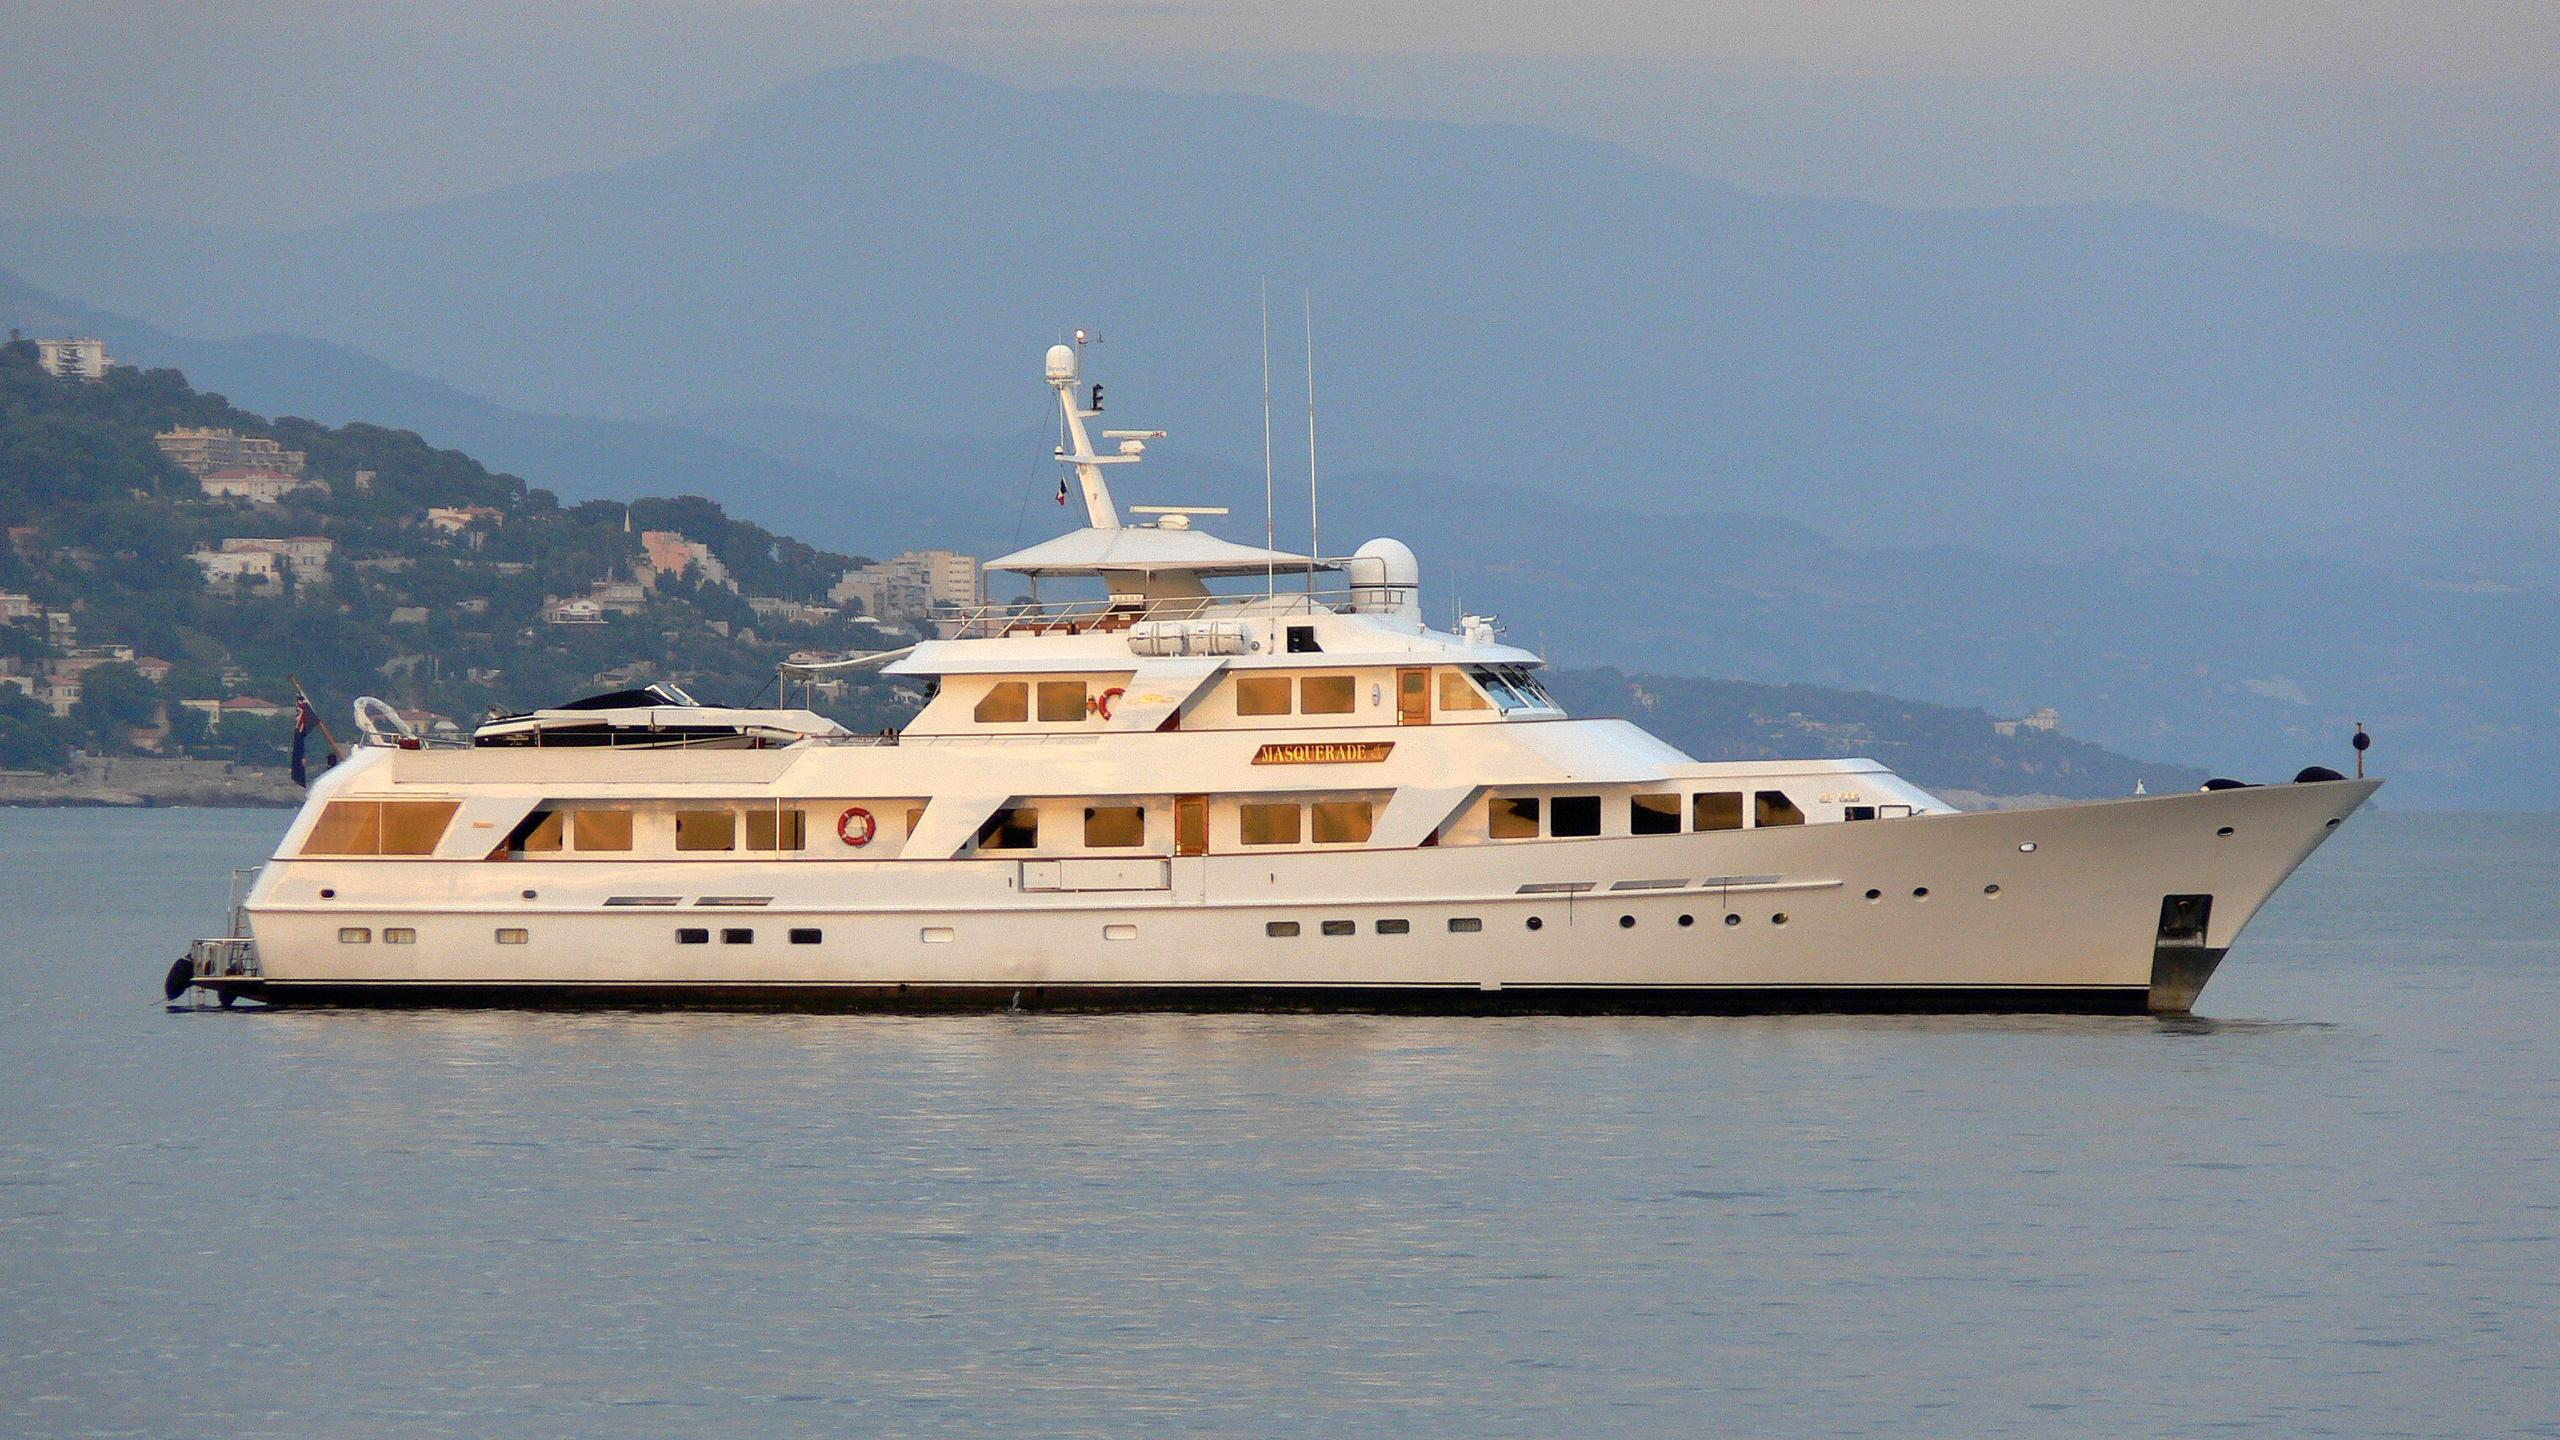 A2-motor-yacht-feadship-1983-42m-profile-before-refit